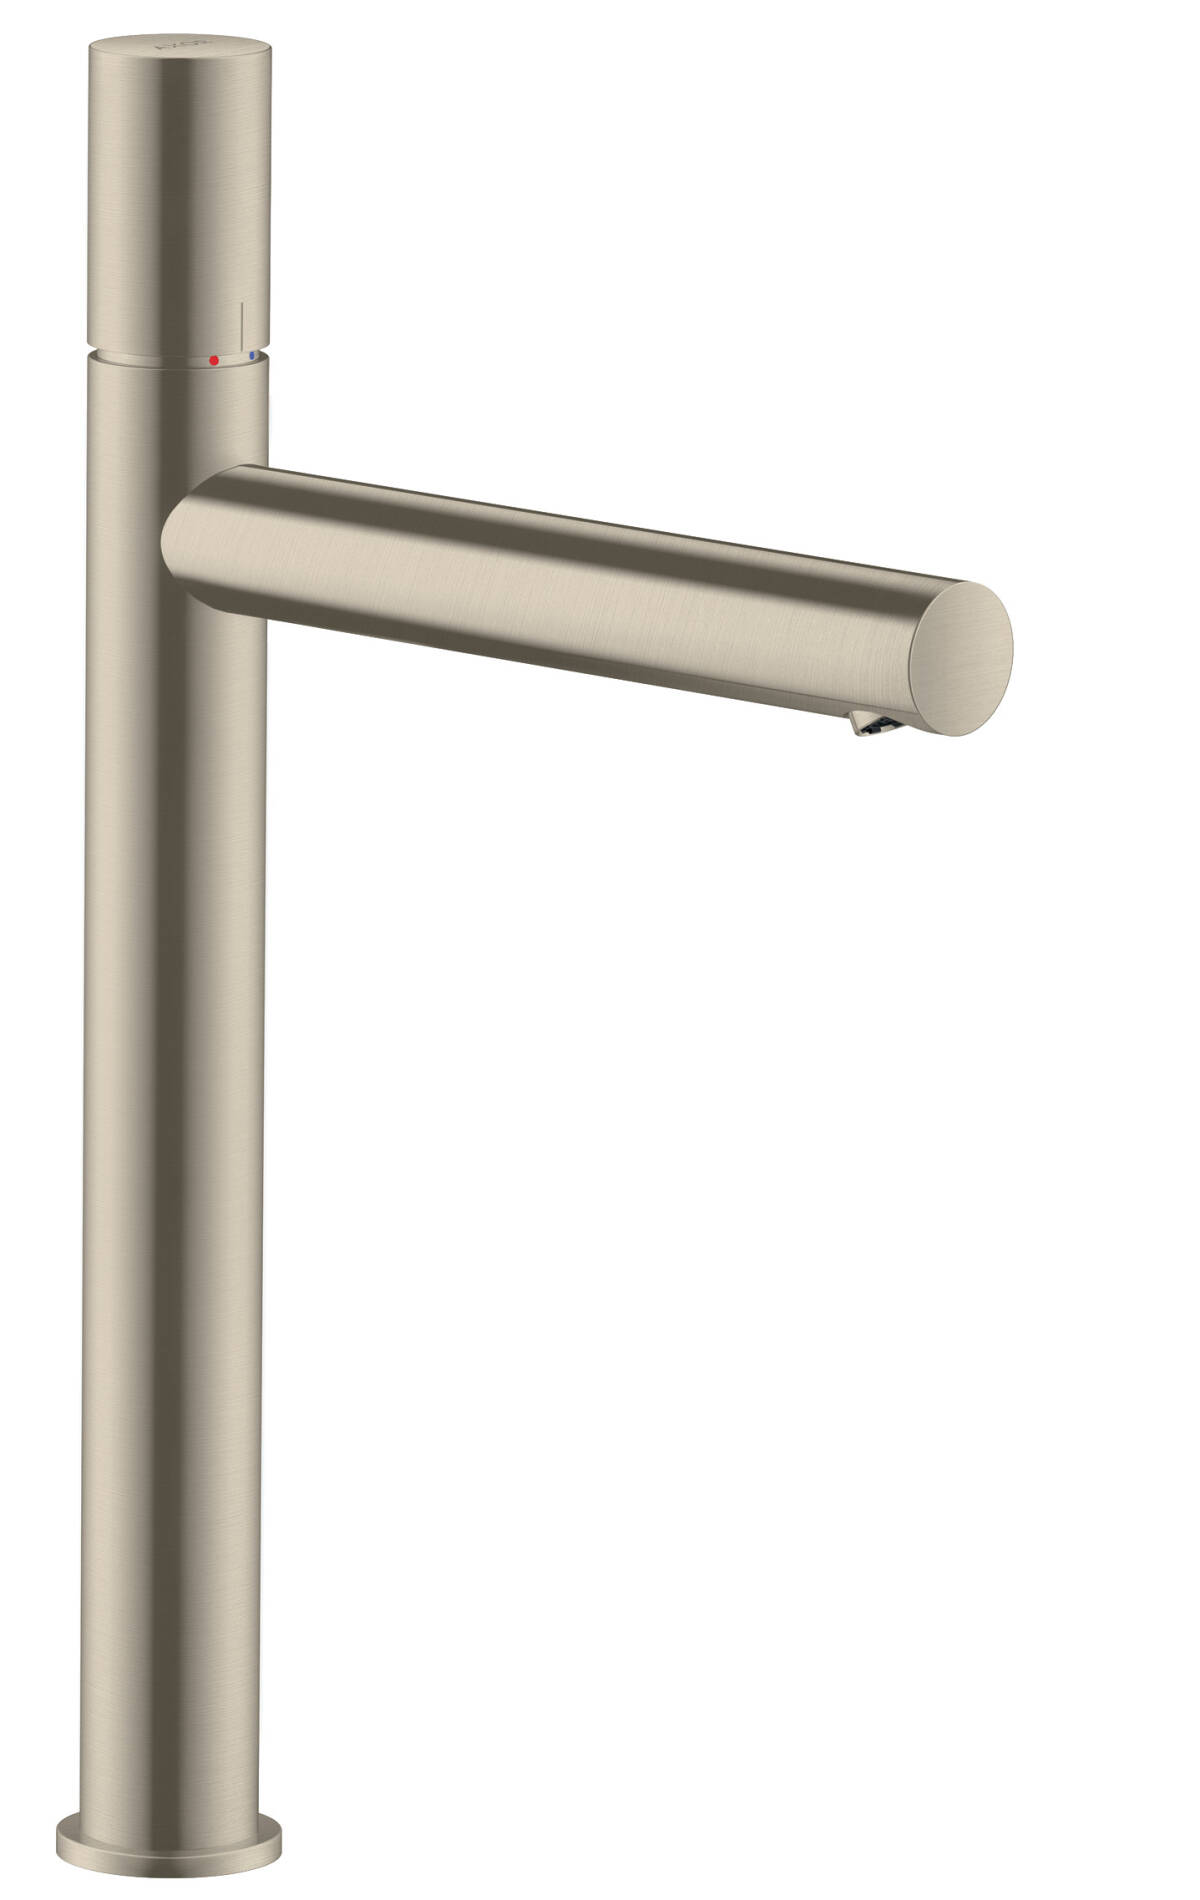 Single lever basin mixer 260 zero handle without pull-rod, Brushed Nickel, 45004820